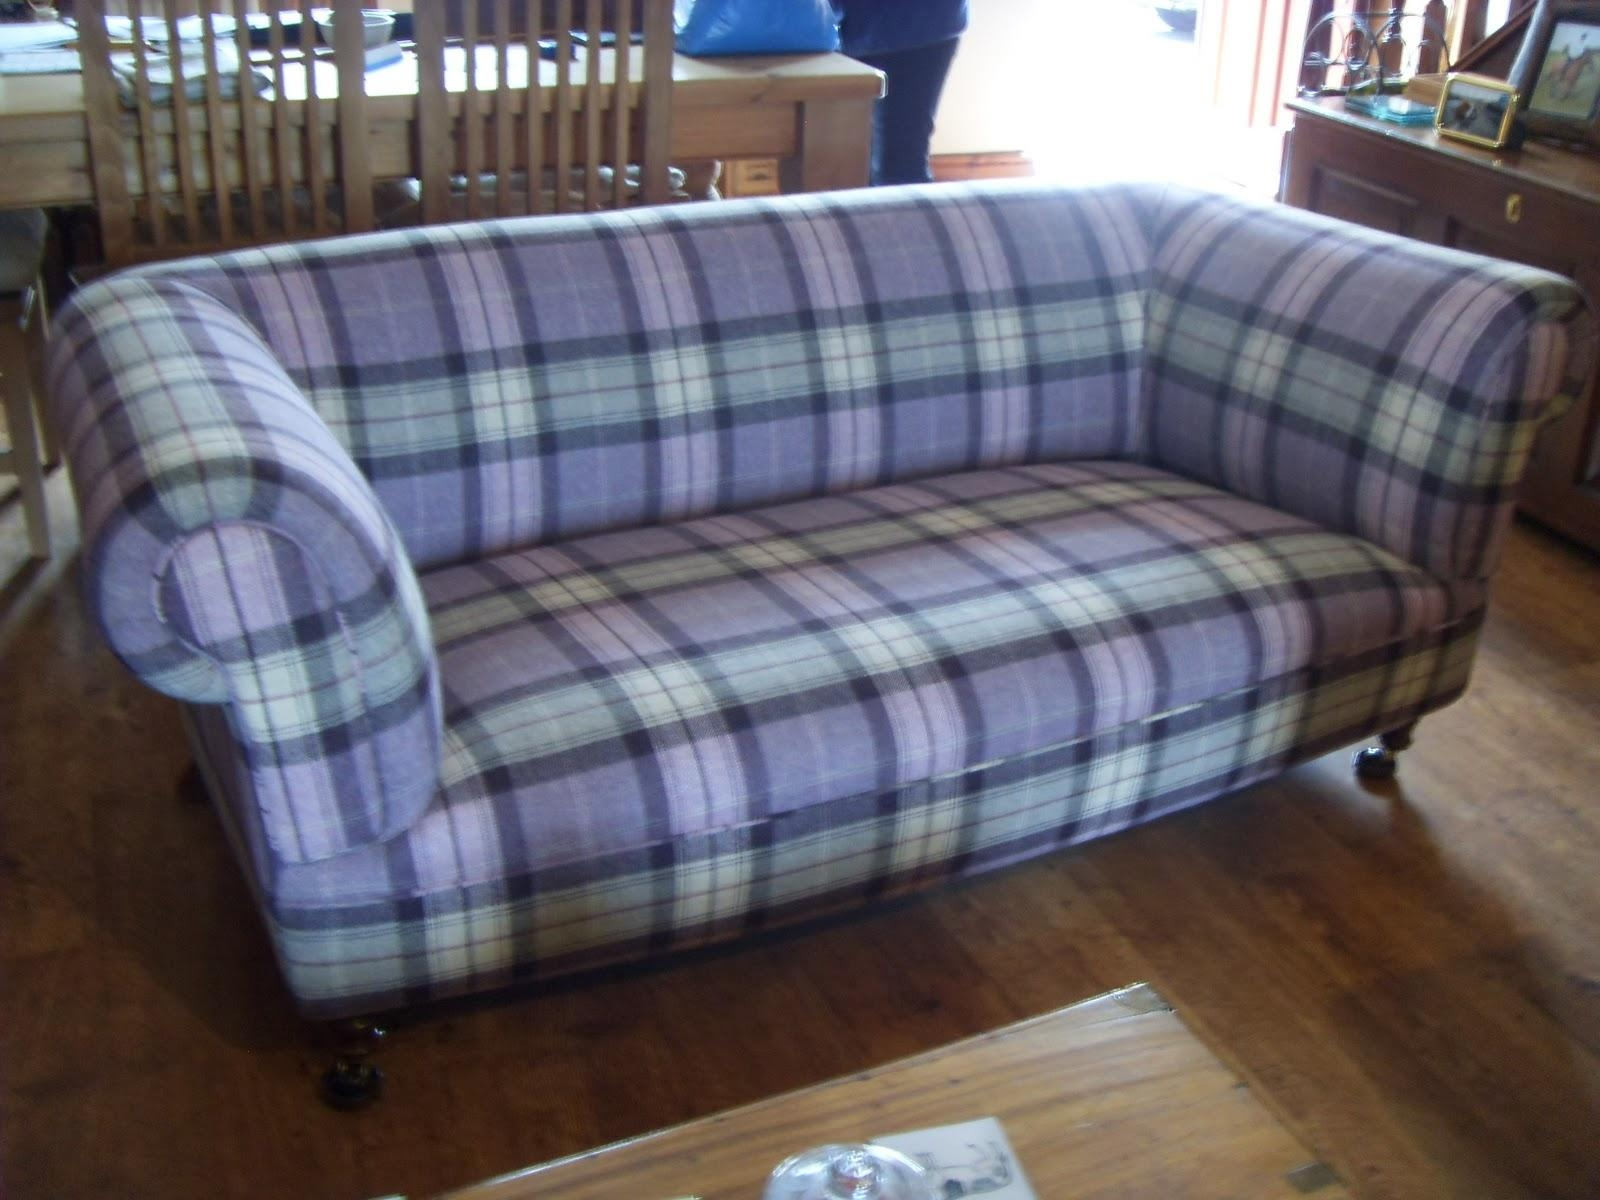 Plaid Couch | Home Decor & Furniture In Blue Plaid Sofas (Image 12 of 20)